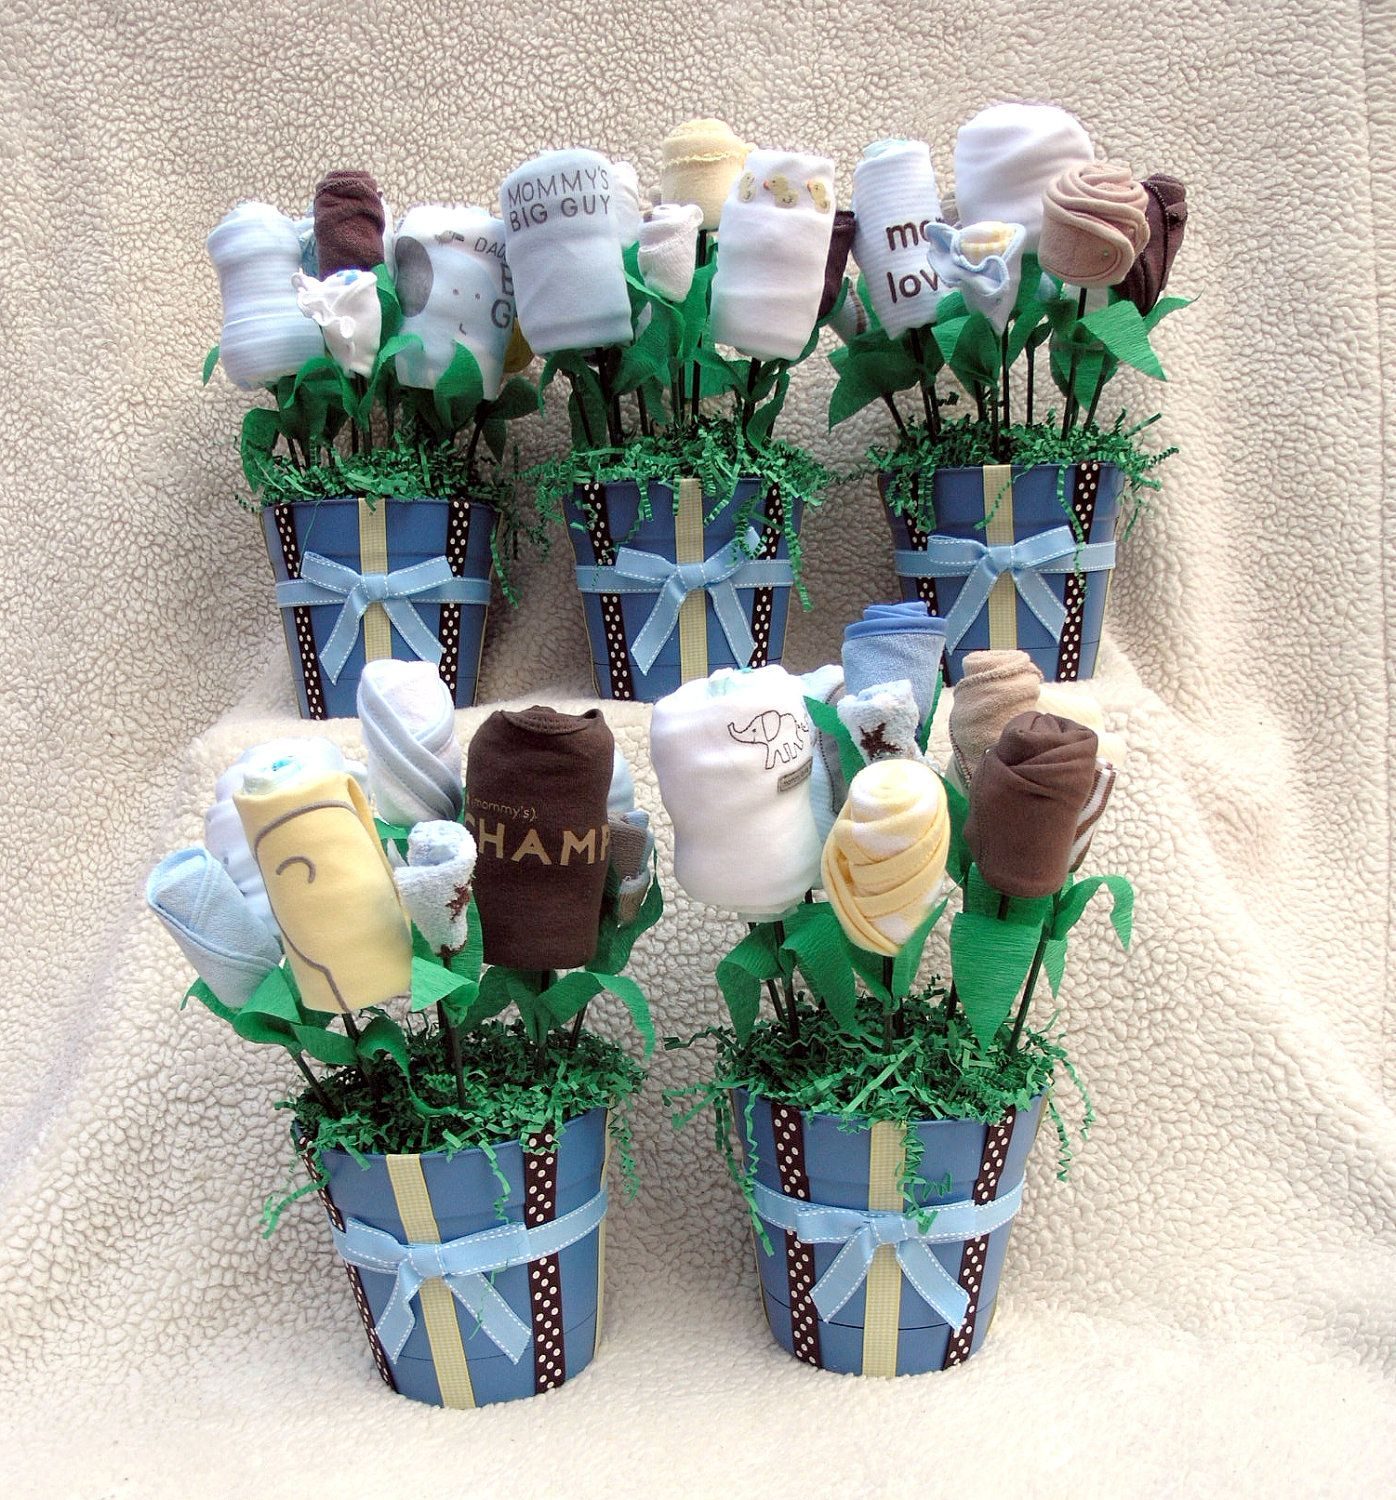 5 baby shower decorations for a baby boy shower via etsy